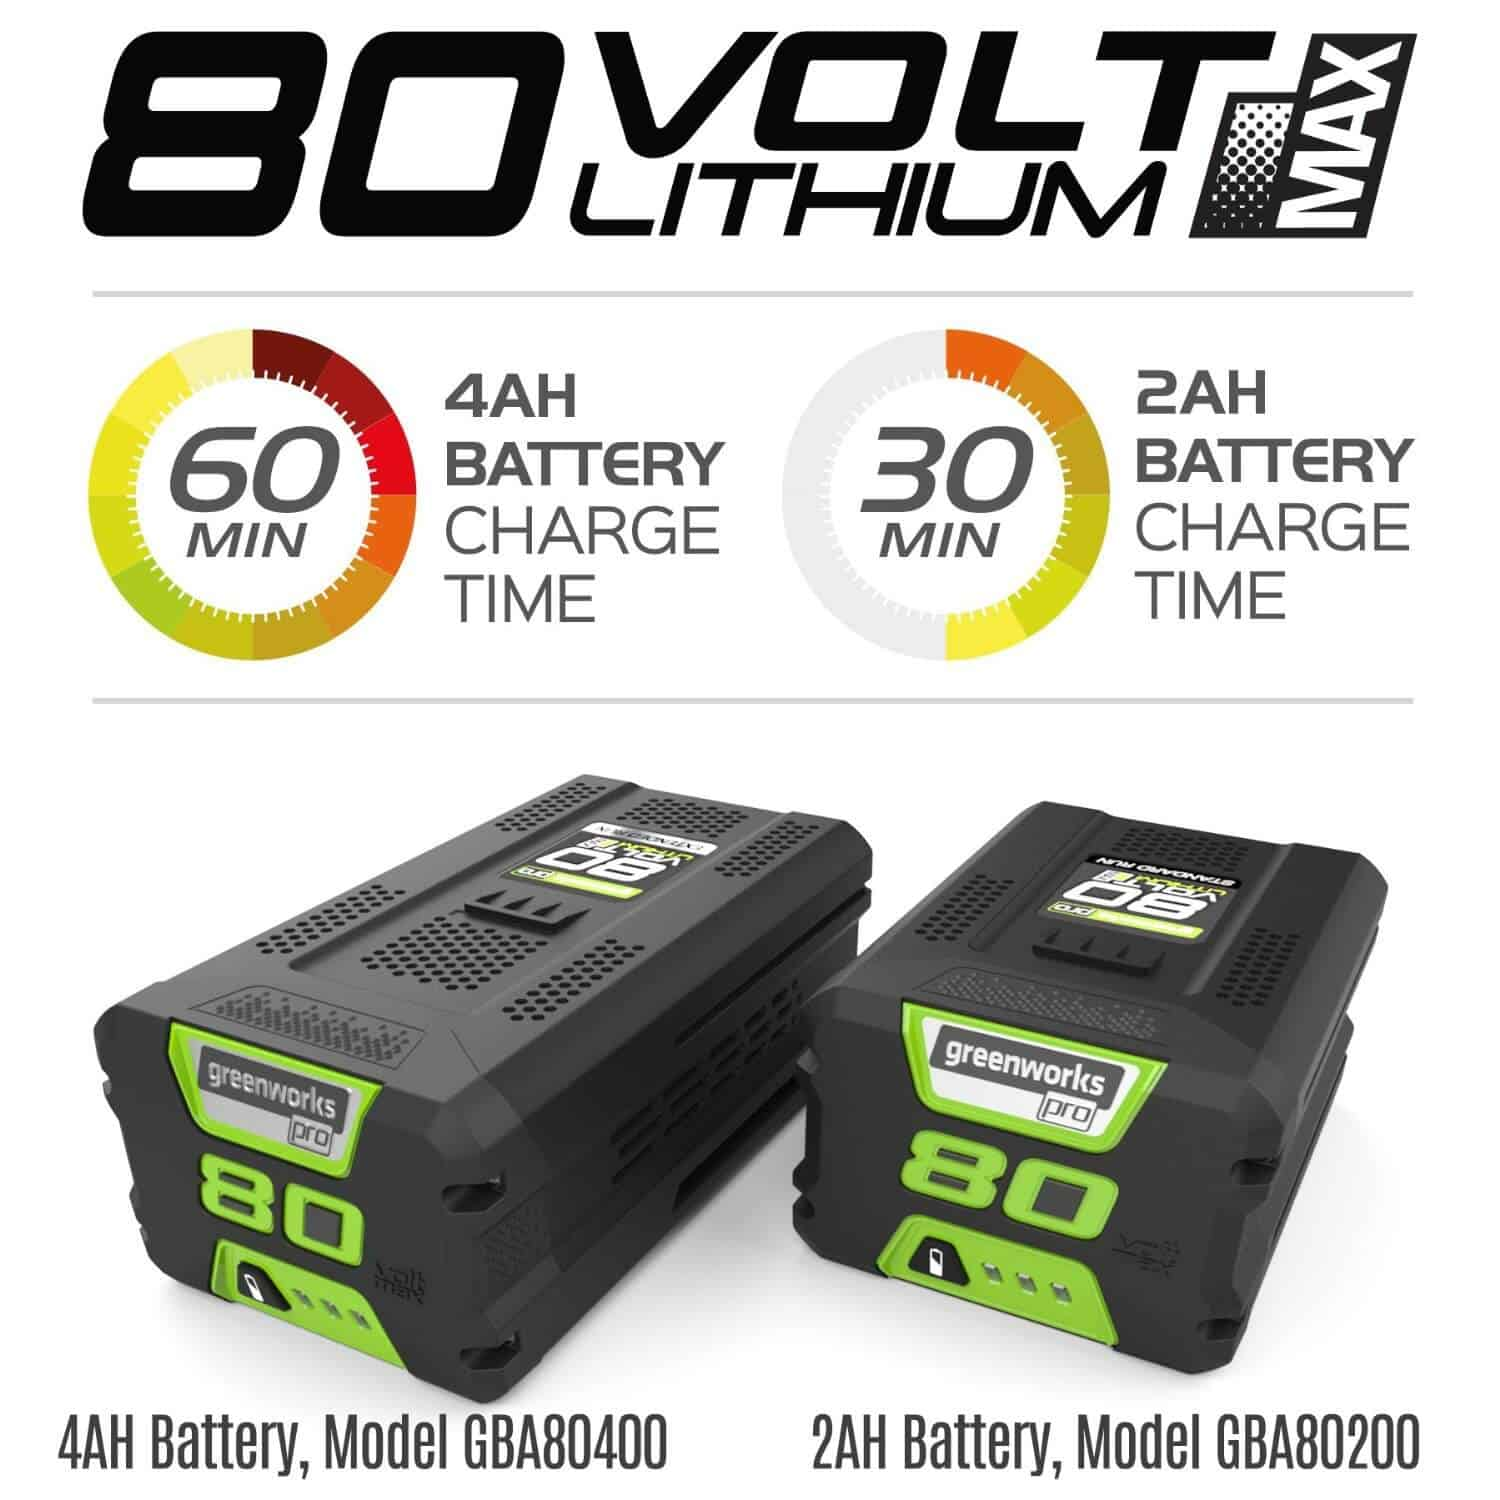 Separate Batteries for Greenworks leaf blower